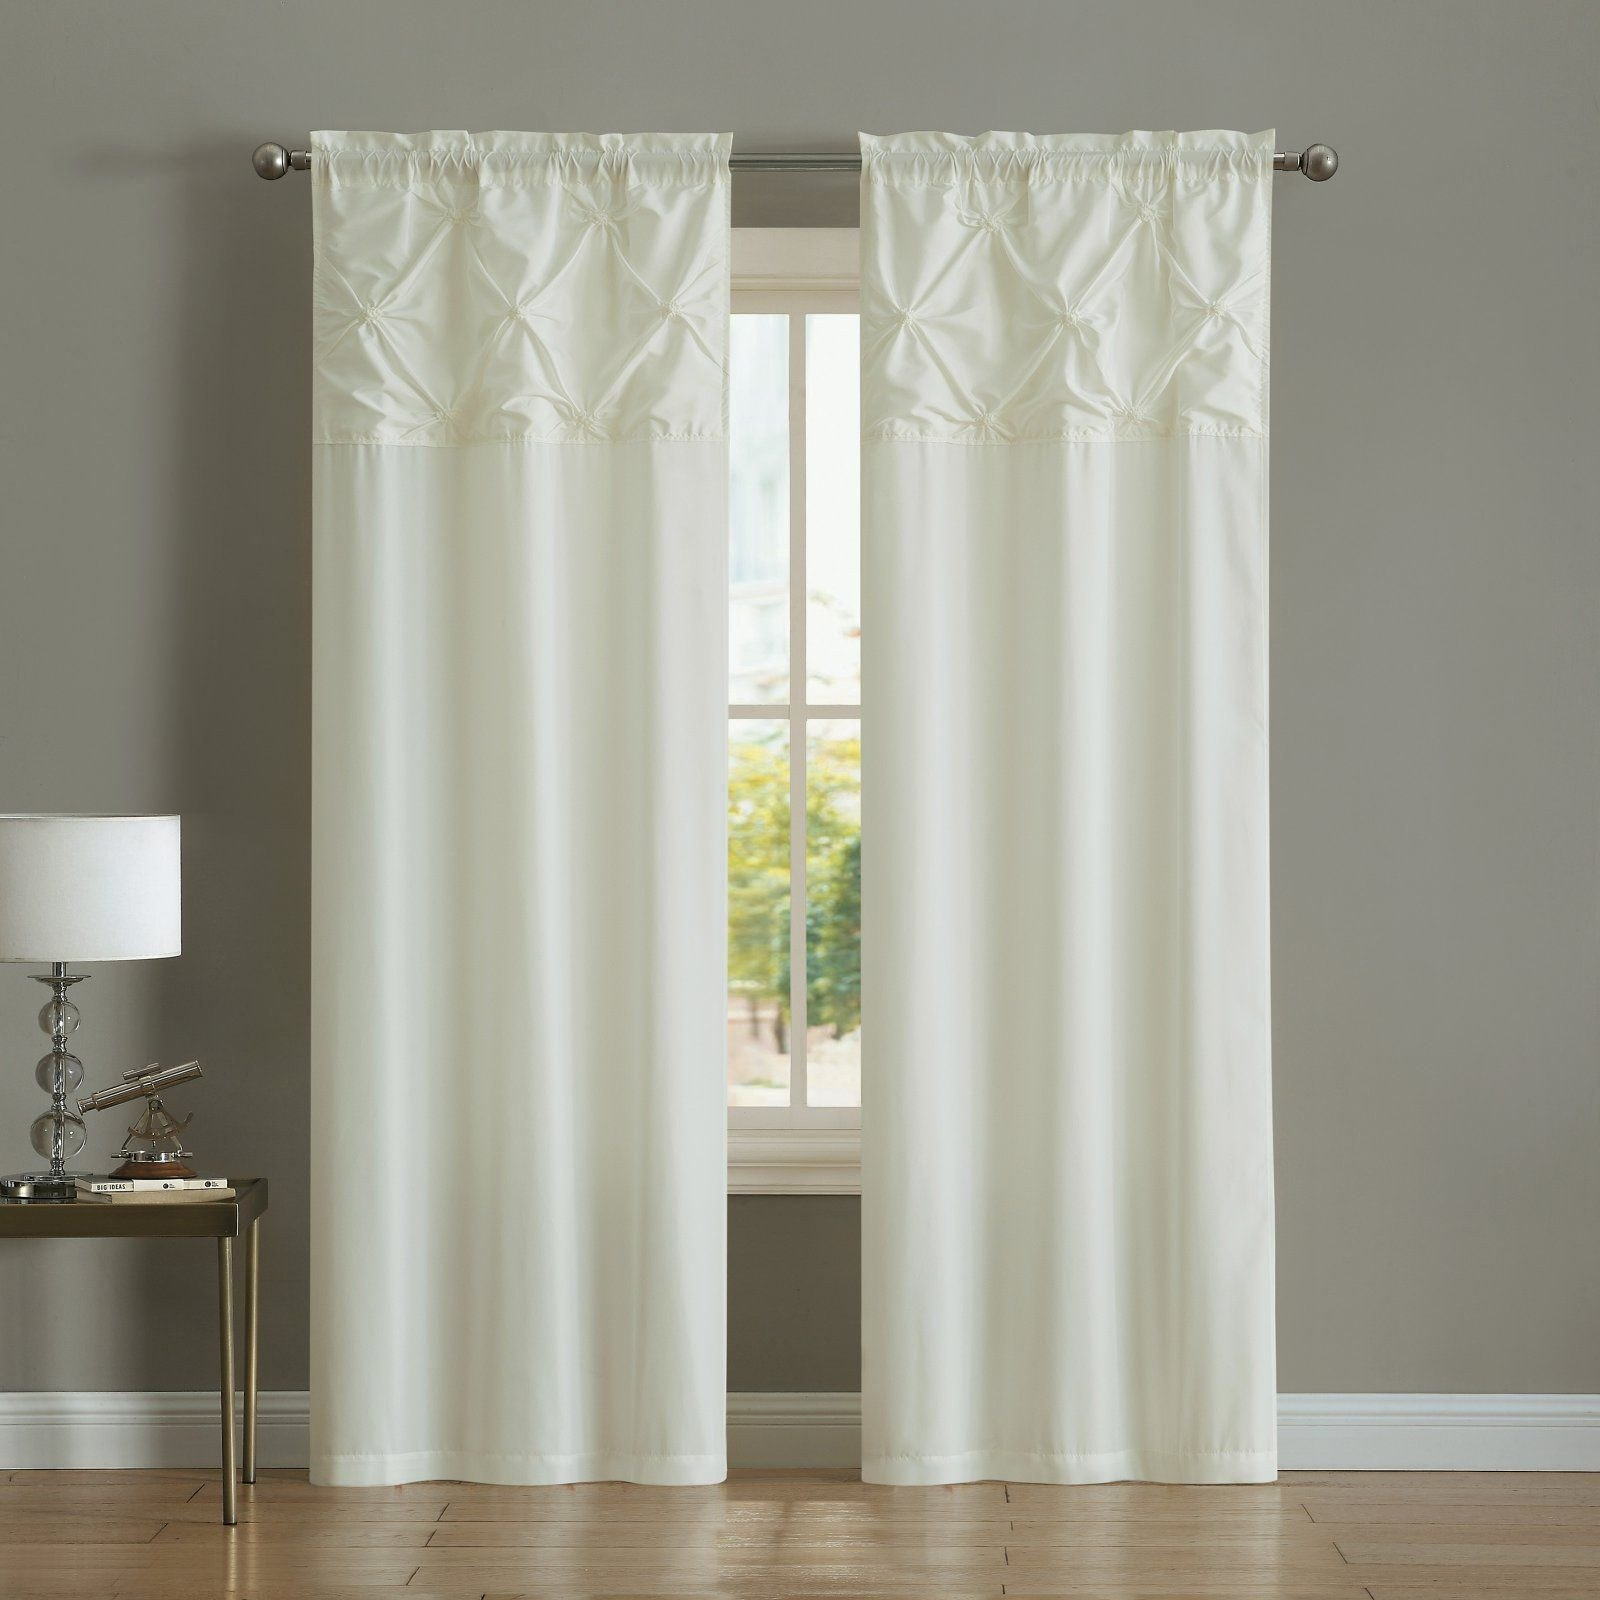 Colorful Curtains for Bedroom Best Of Mainstays Pintuck Floral Burst Grommet Window Curtain Set